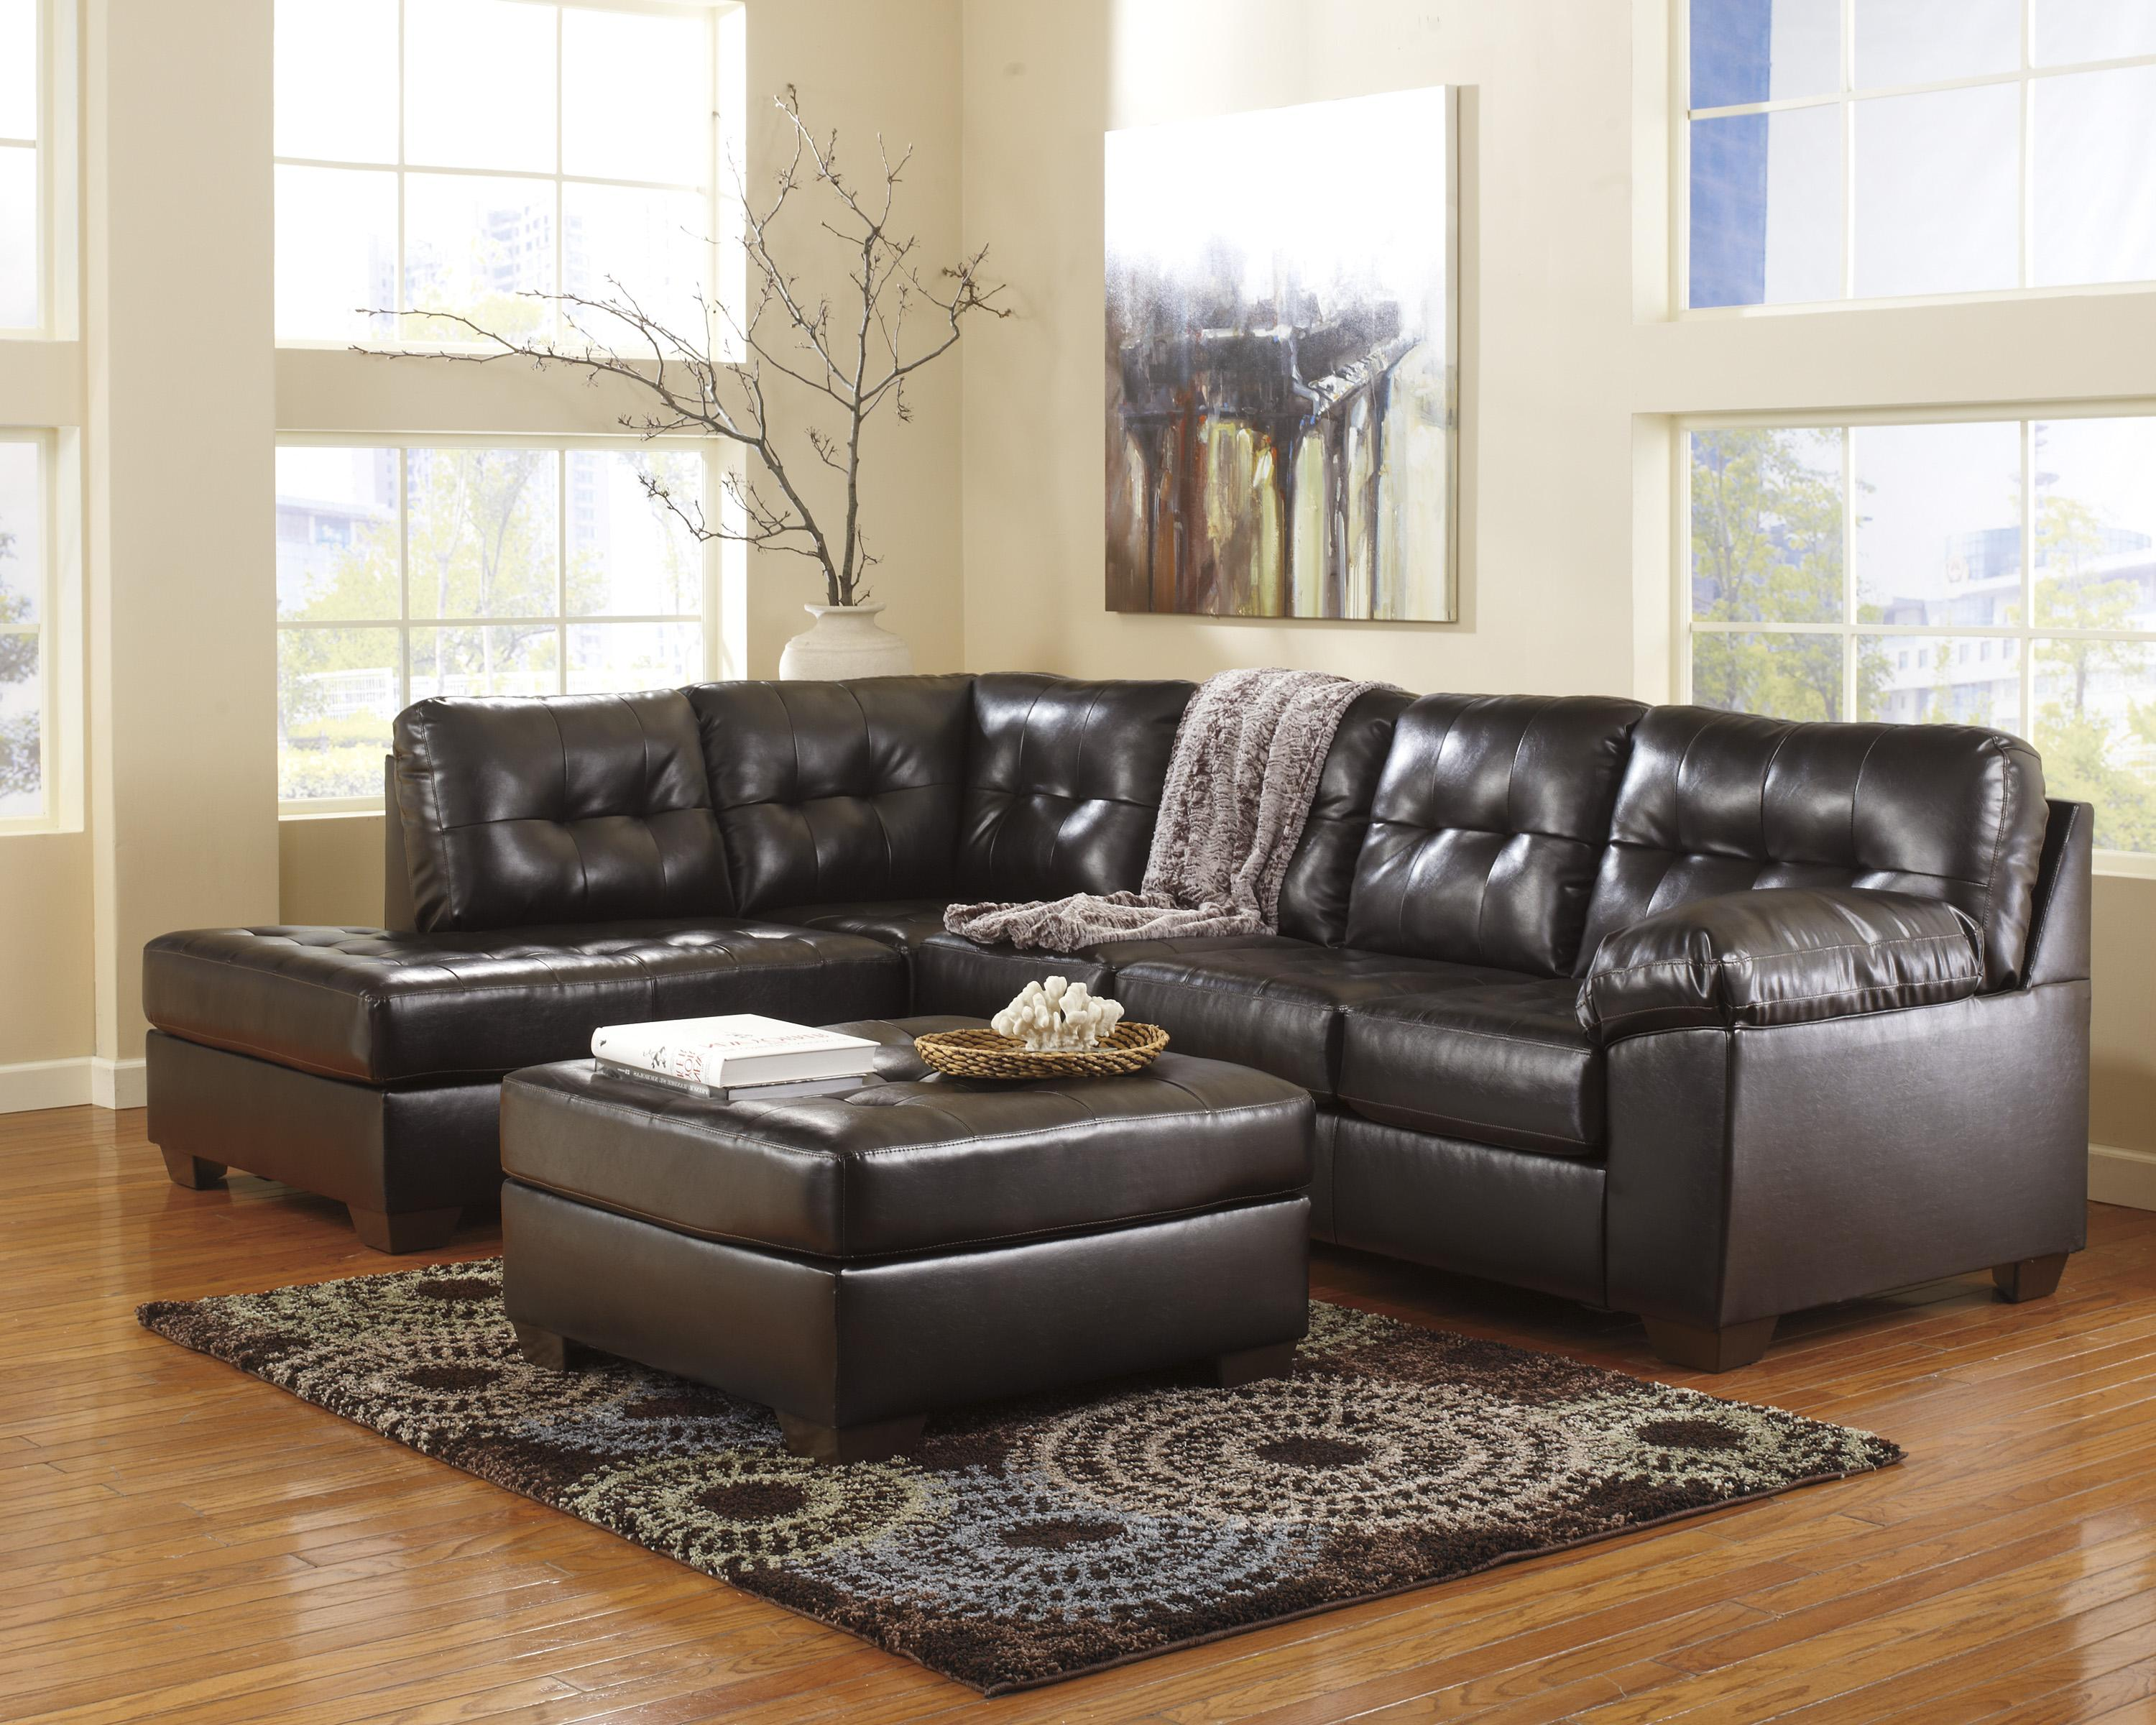 sofas couch sectional picks apartment living sofa modular sectionals comfortable small modern sale room best fresh for couches